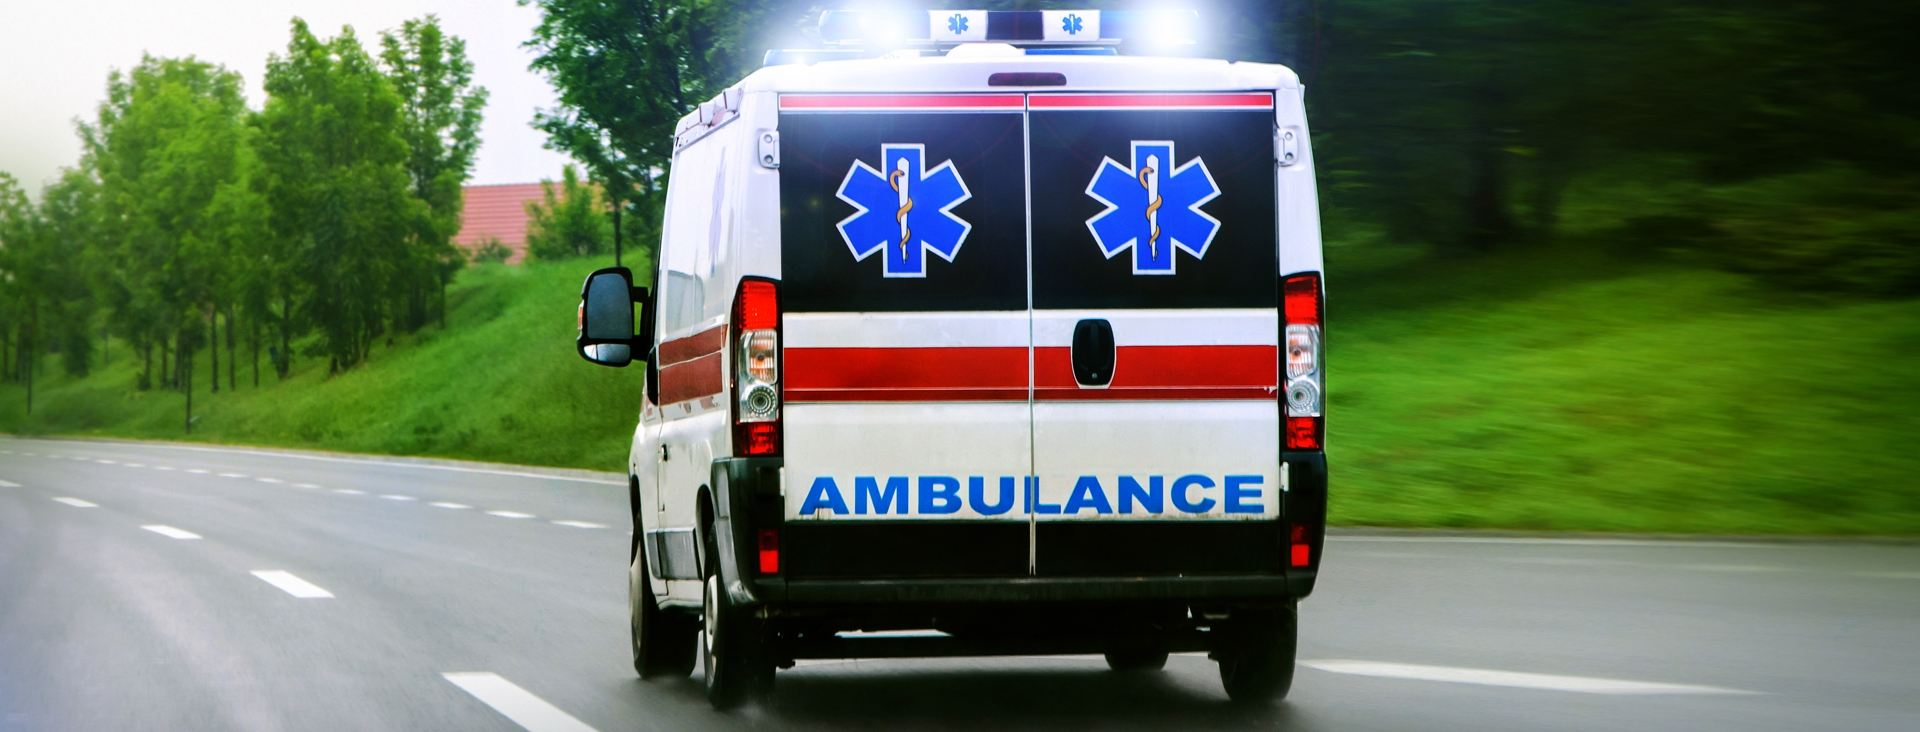 Ambulance USA - Contact Us - Air Ambulance | Global Medical Response | International Emergency Medical Services| Non-Emergency Ambulance Transportation | EMS Transportation